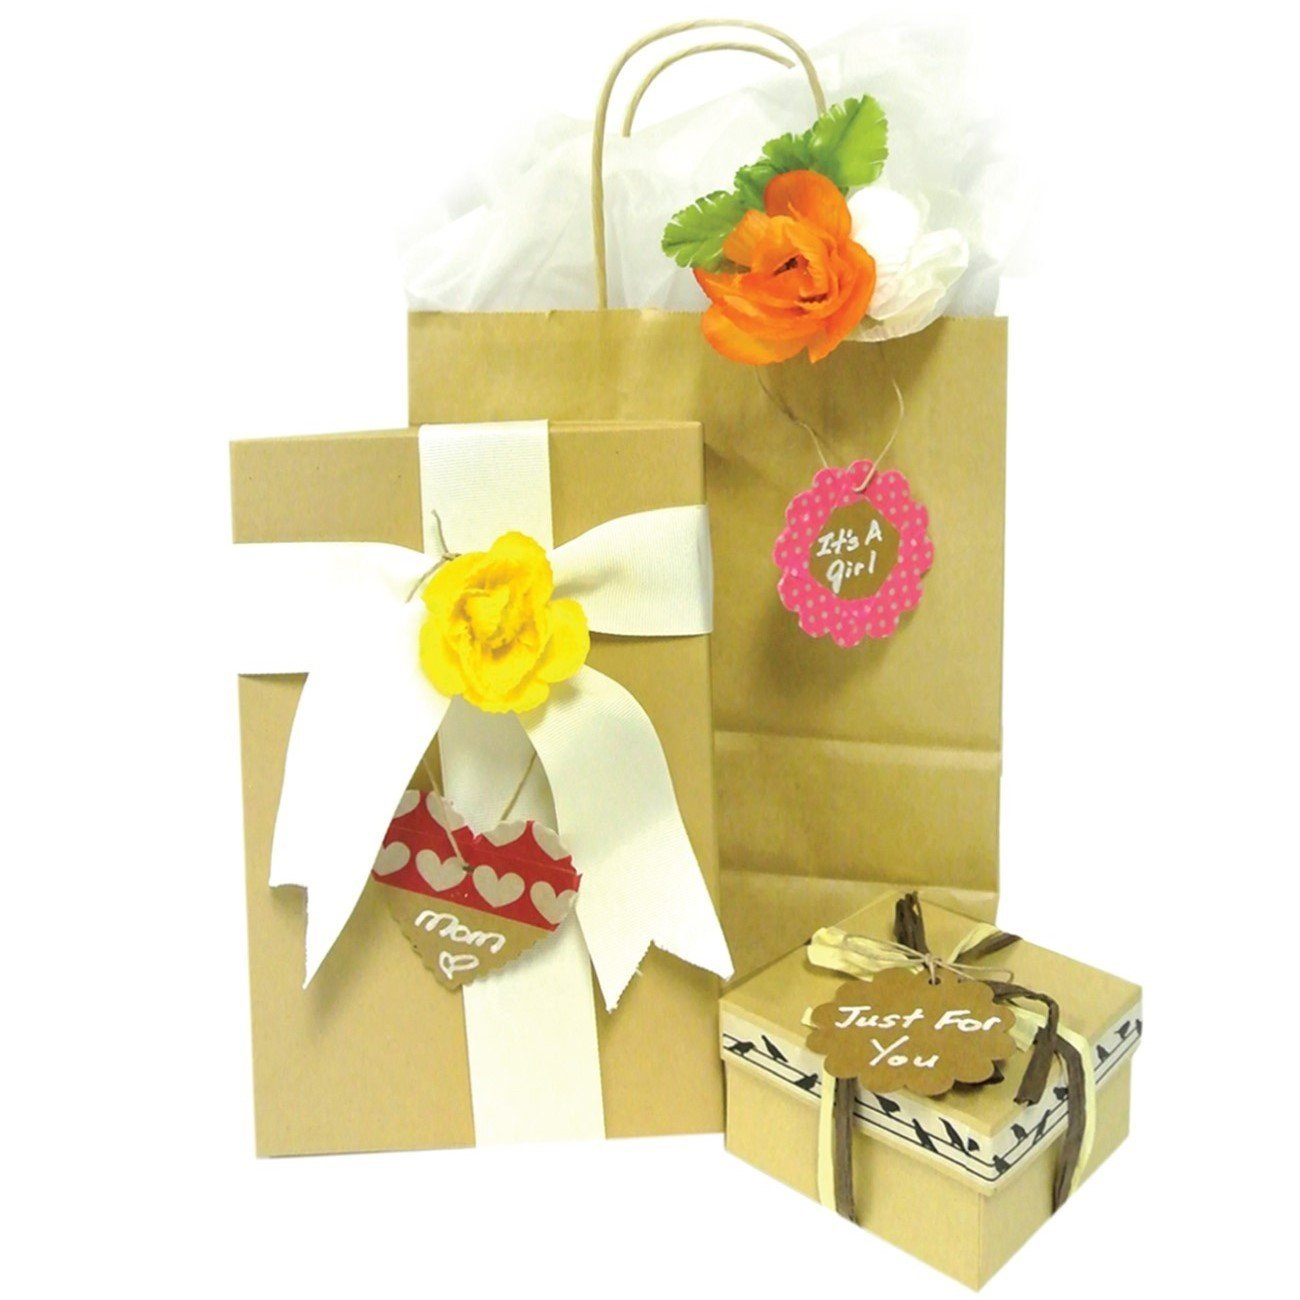 Wrapables 40 Gift Tags with Free Cut Strings, Large Scalloped Edge (Set of 4) + Cotton Baker's Twine